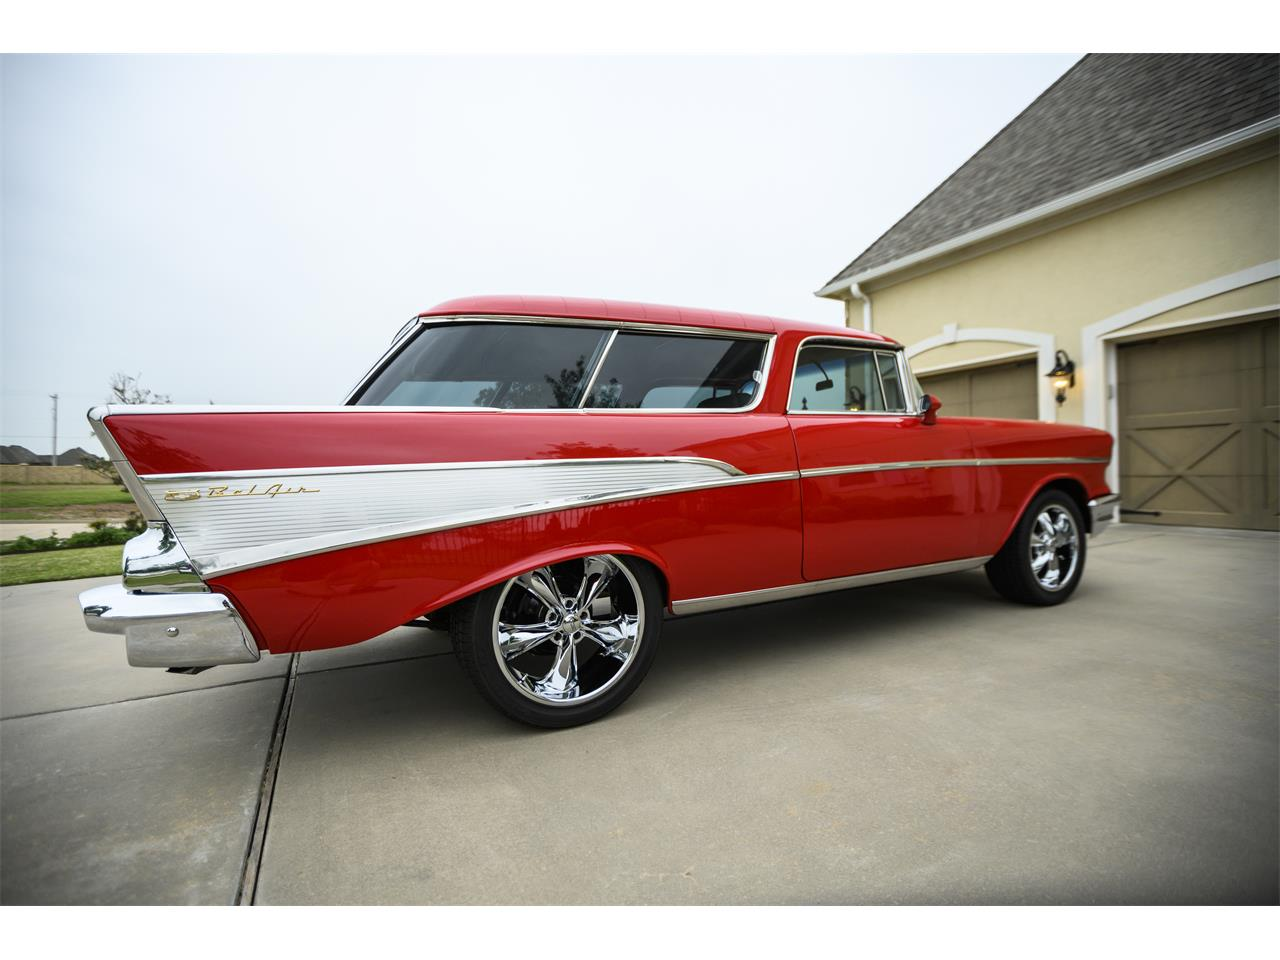 Large Picture of Classic '57 Chevrolet Bel Air Nomad located in Oklahoma - $67,400.00 Offered by a Private Seller - PZTB